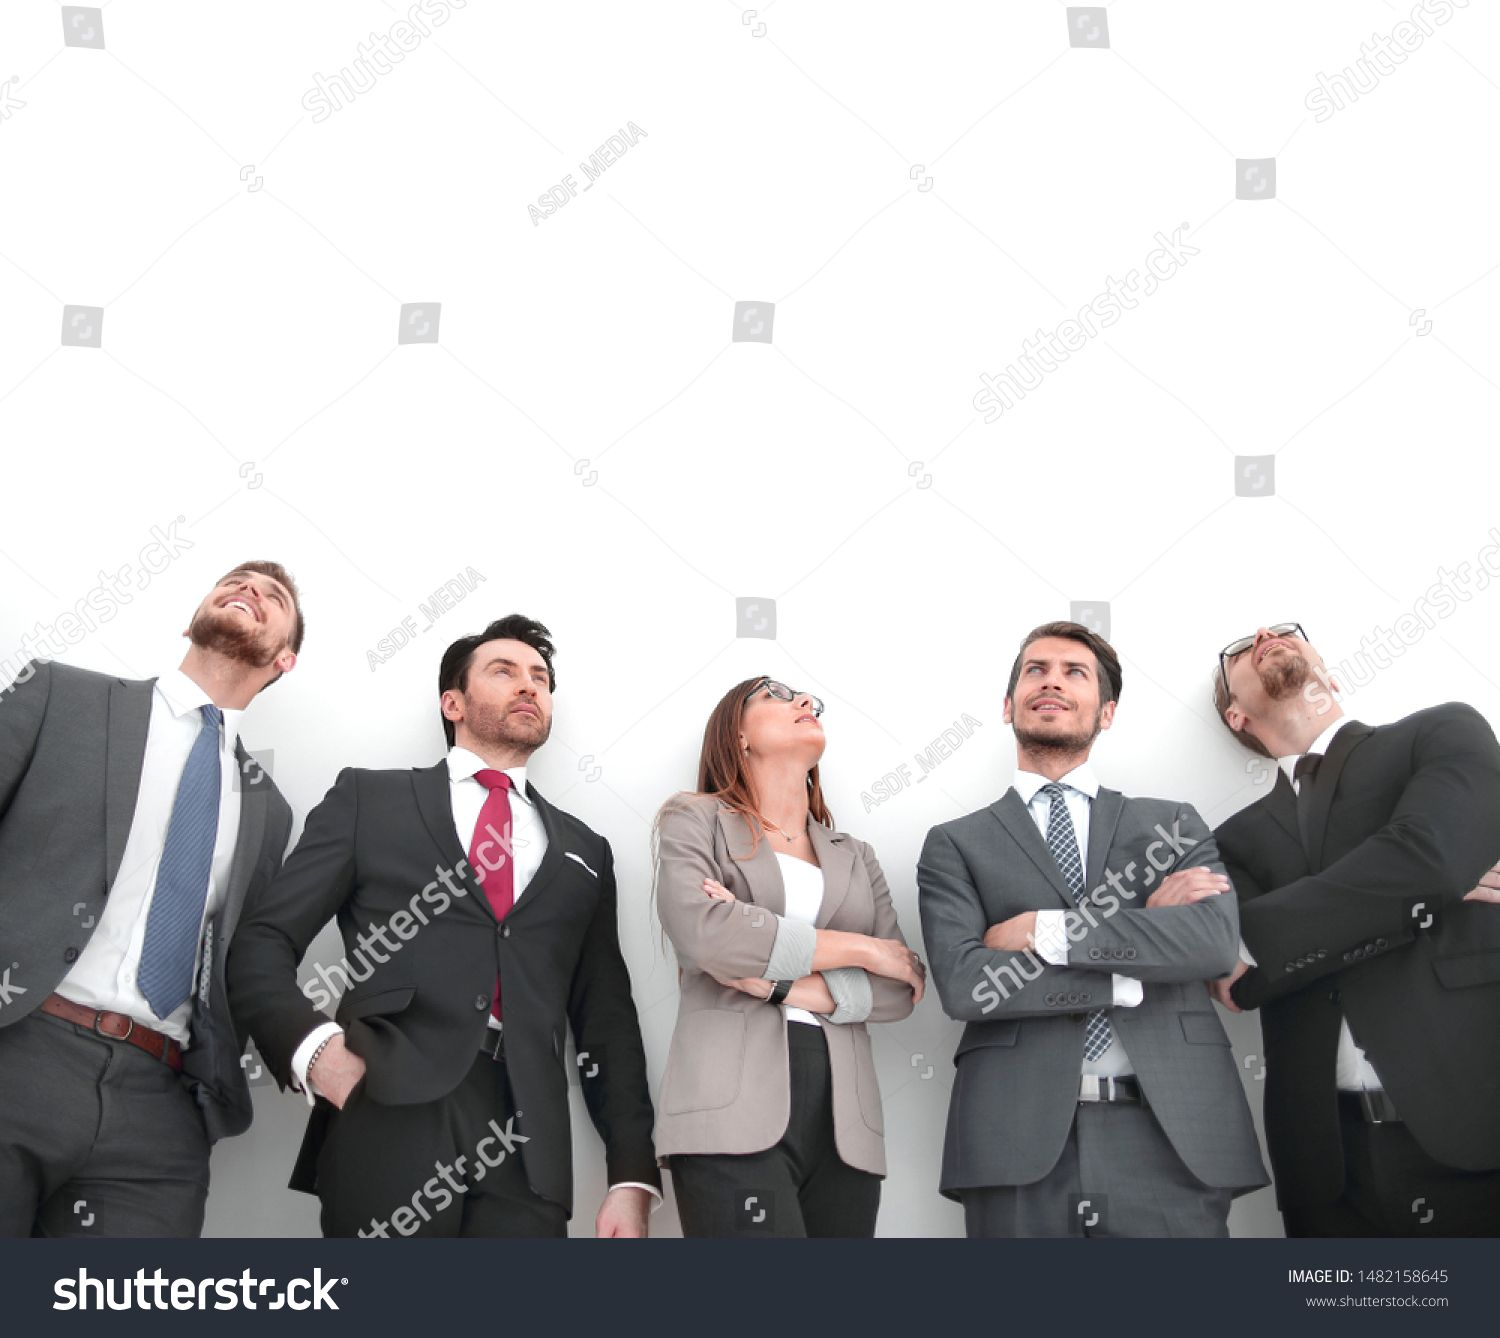 Large Group Of Business People Meeting Together Ad Ad Group